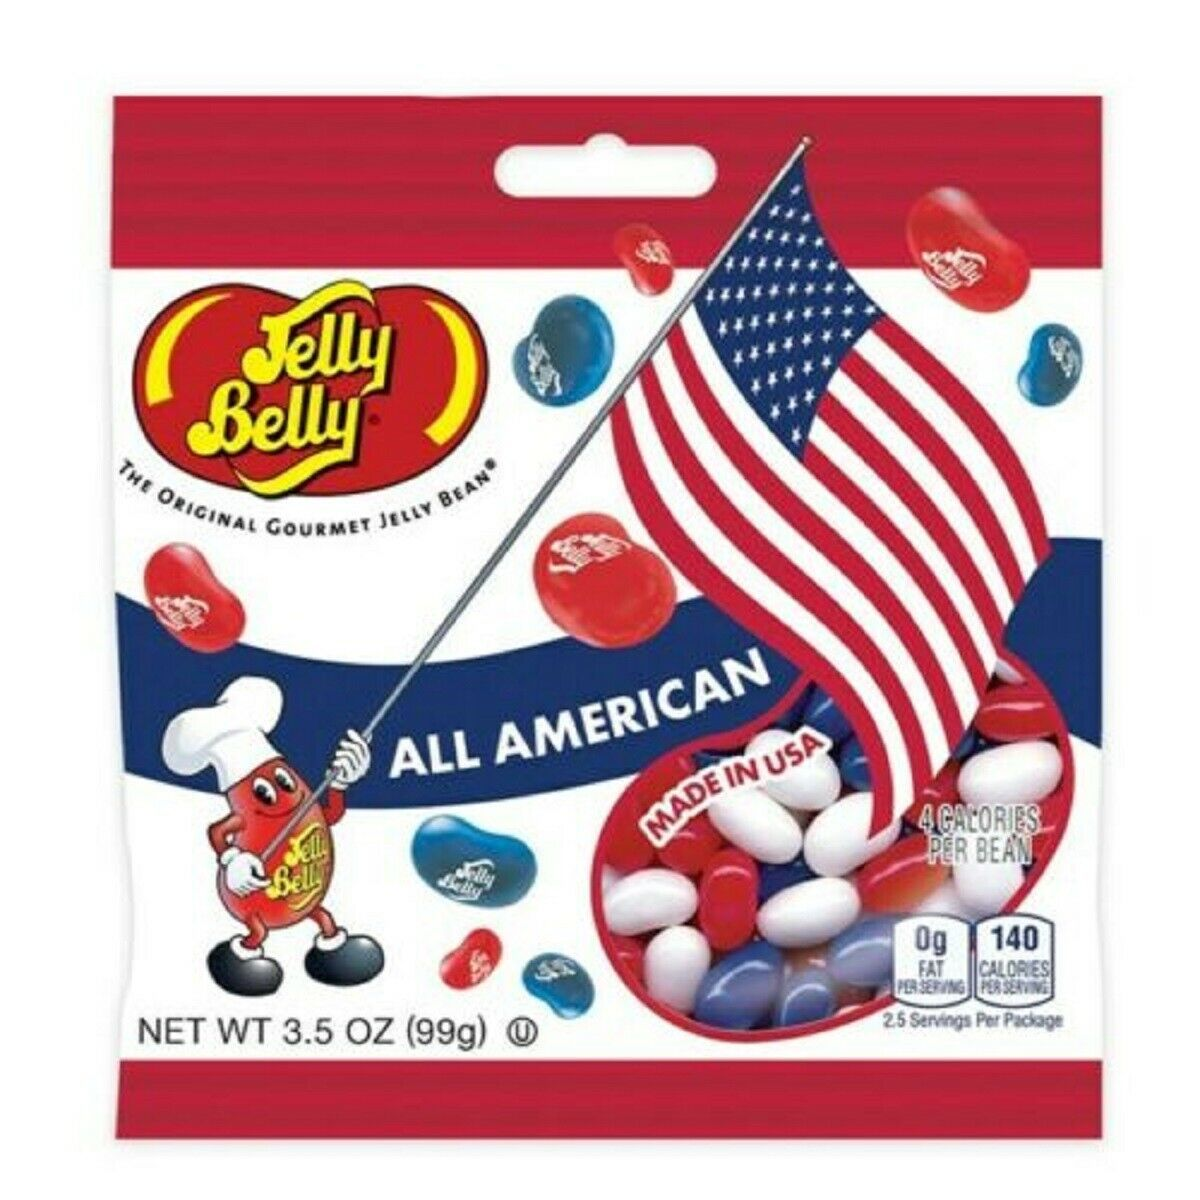 ALL AMERICAN MIX Jelly Belly  FRESH & TASTY  Candy - 3.5oz / bag